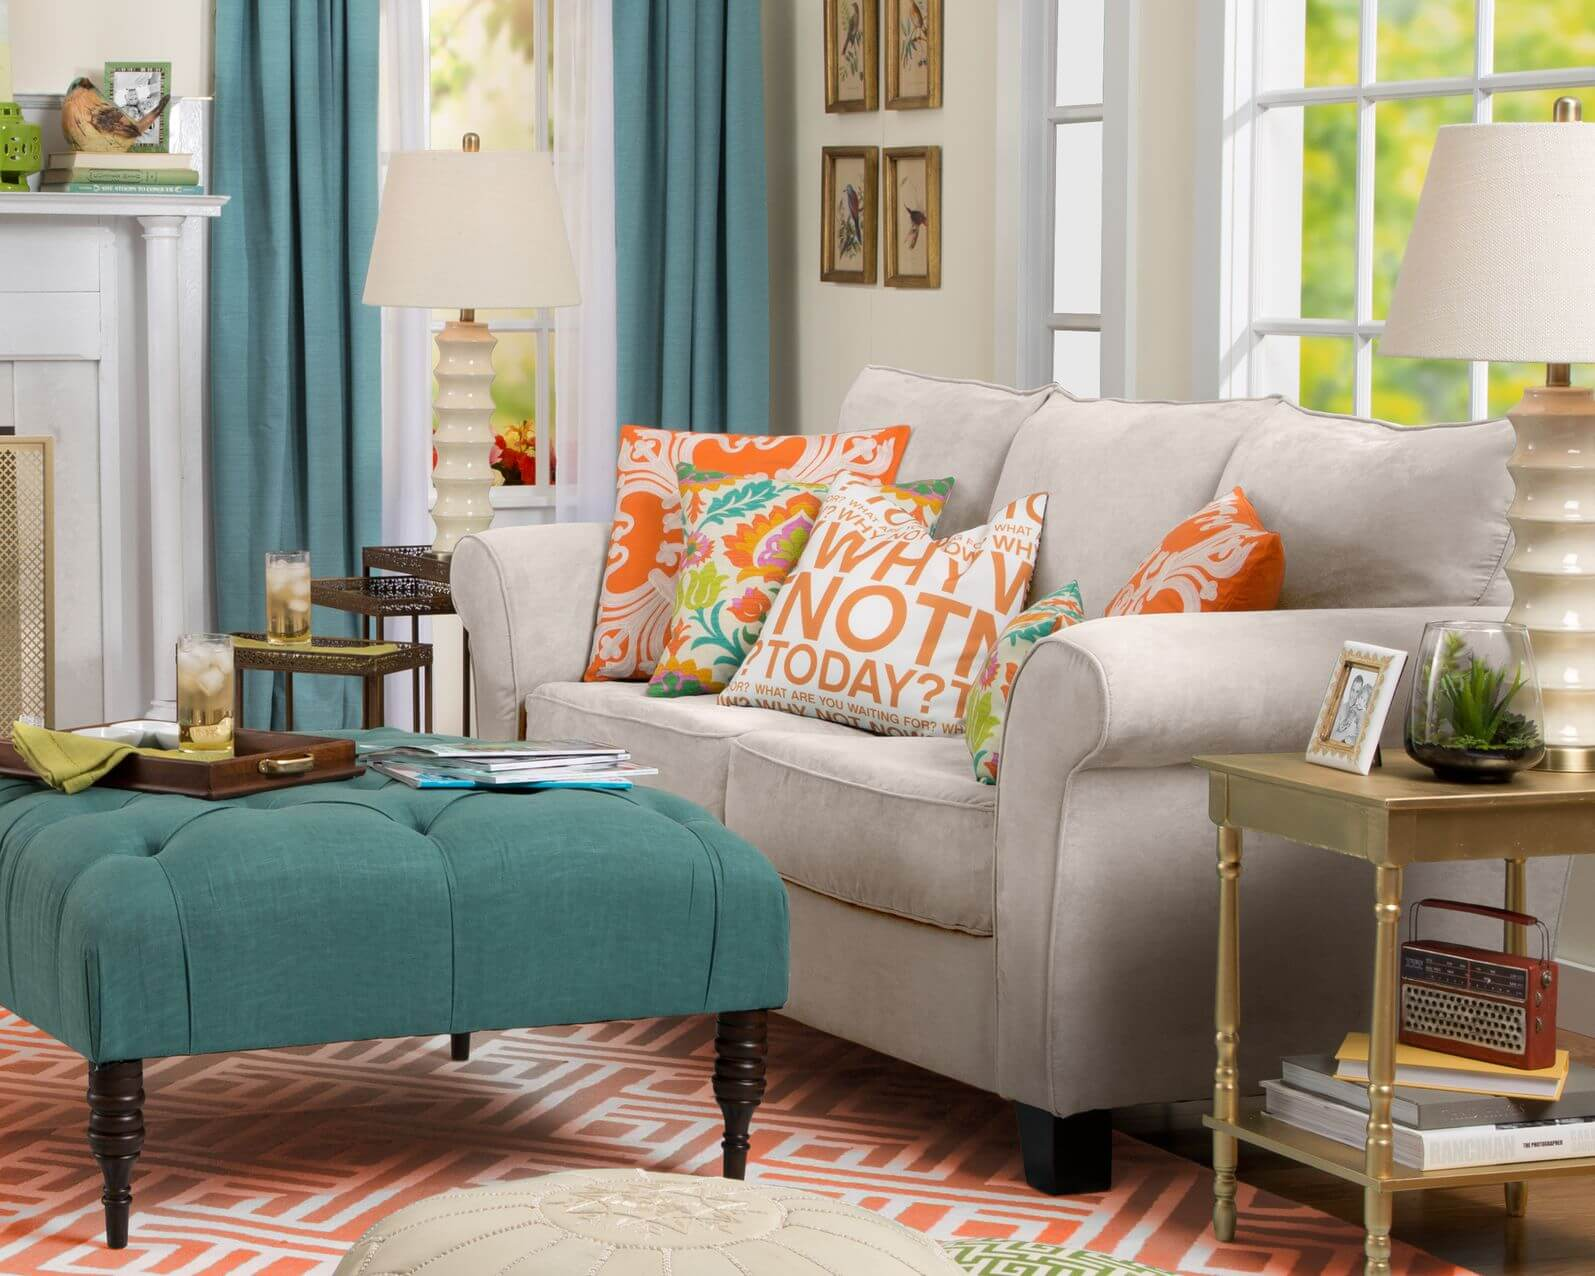 Bright, contrasting color patterns throughout this living room, featuring neutral toned sofa next to teal button tufted fabric ottoman with dark wood arrow feet.